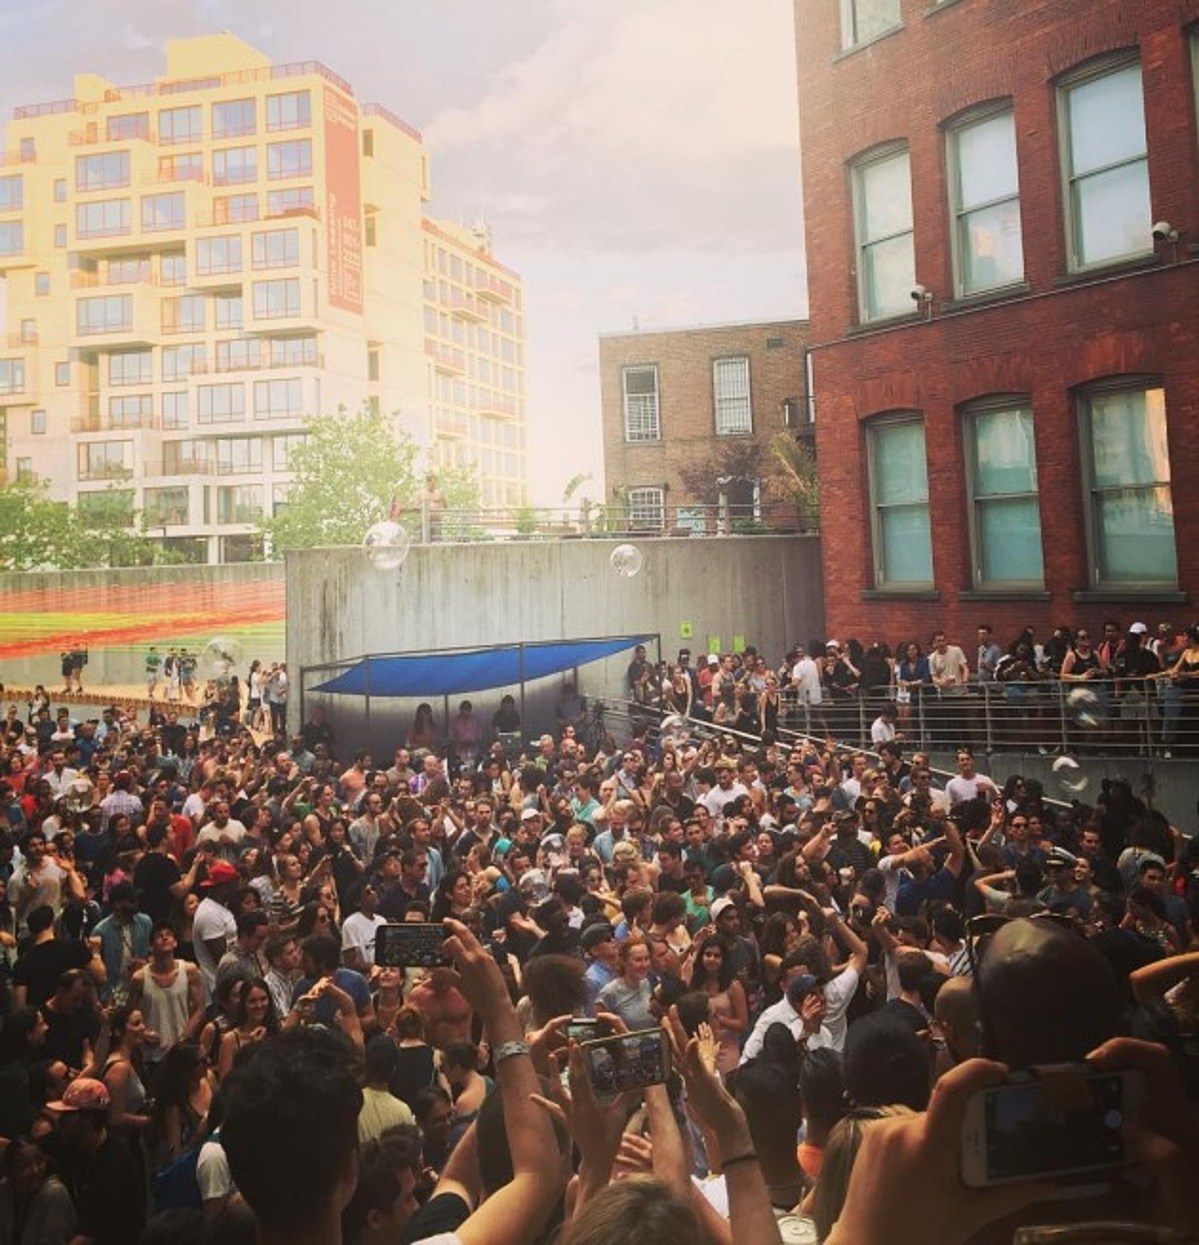 DJ Premier helped kick off Warm Up 2016 at MoMA PS1 (pics